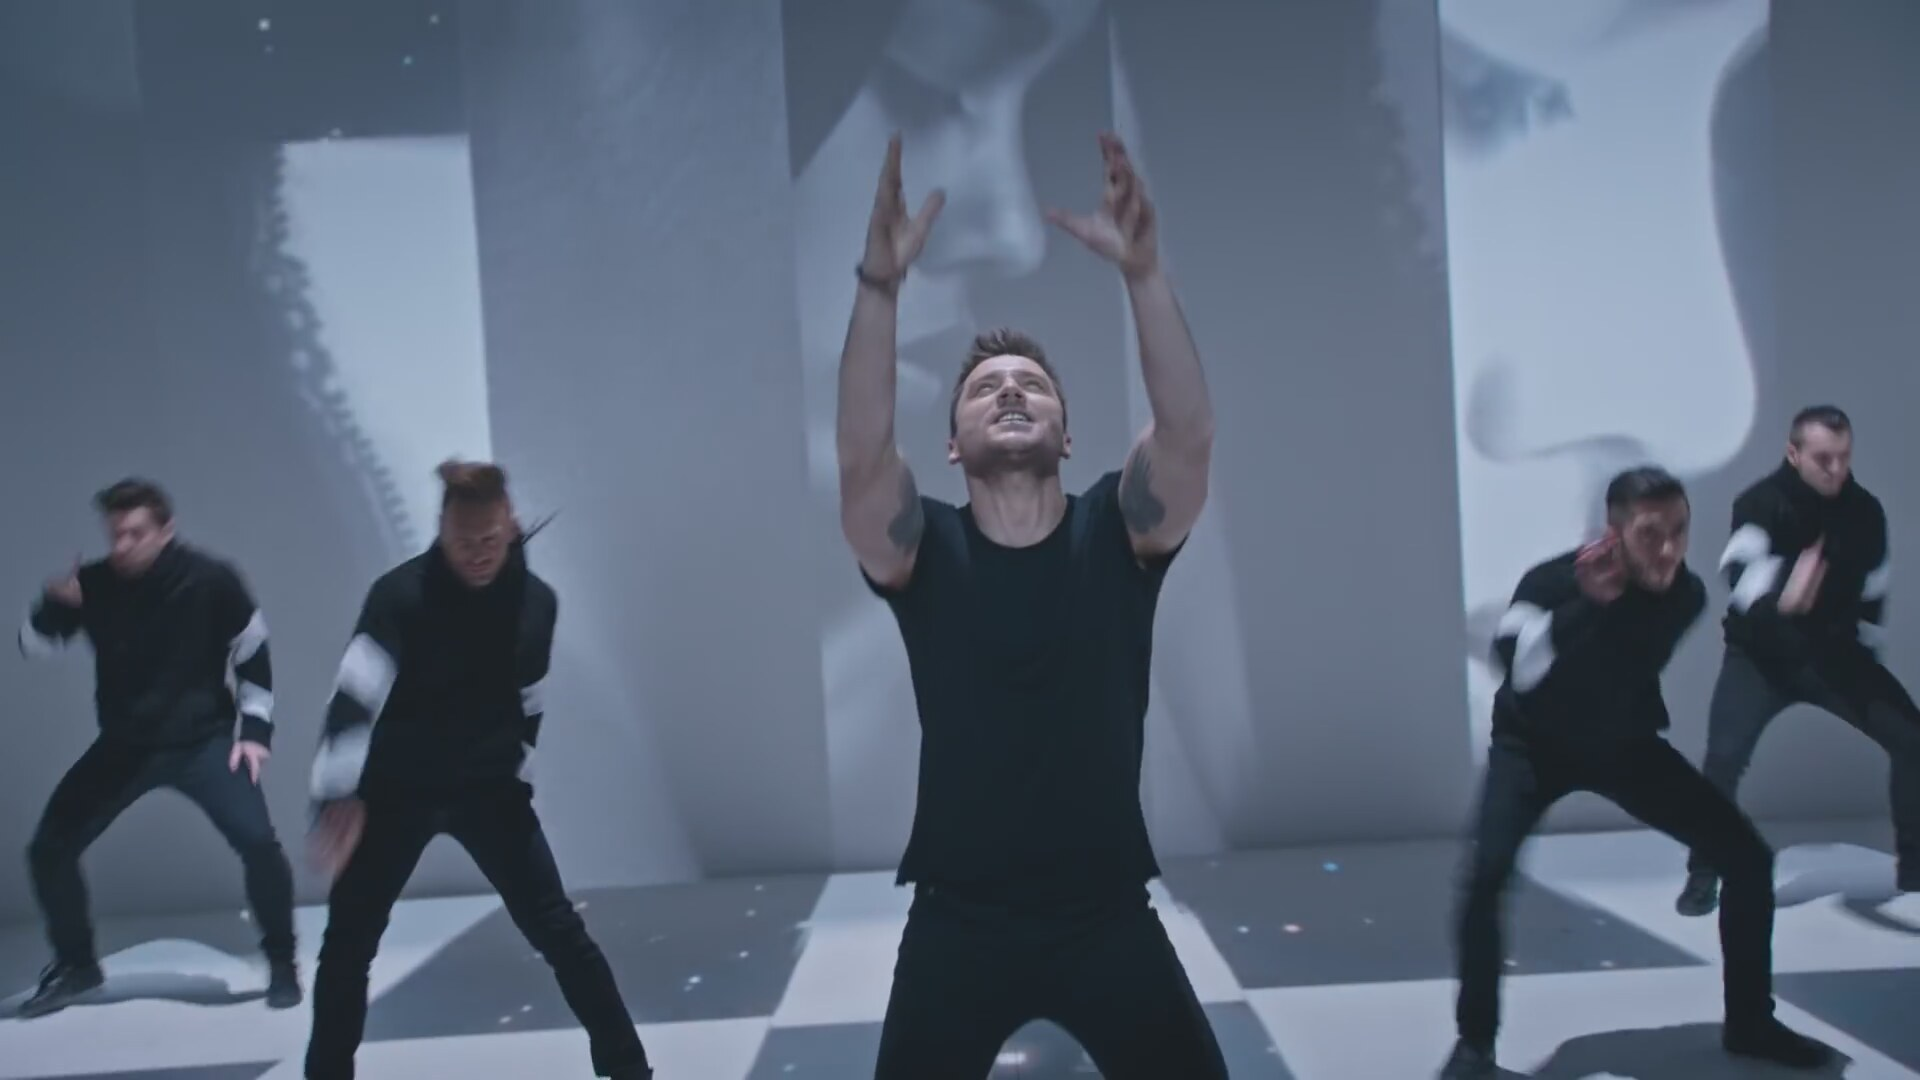 sergey-lazarev-you-are-the-only-one-eurovision-2016-rusya_9222716-34170_1920x1080.jpg